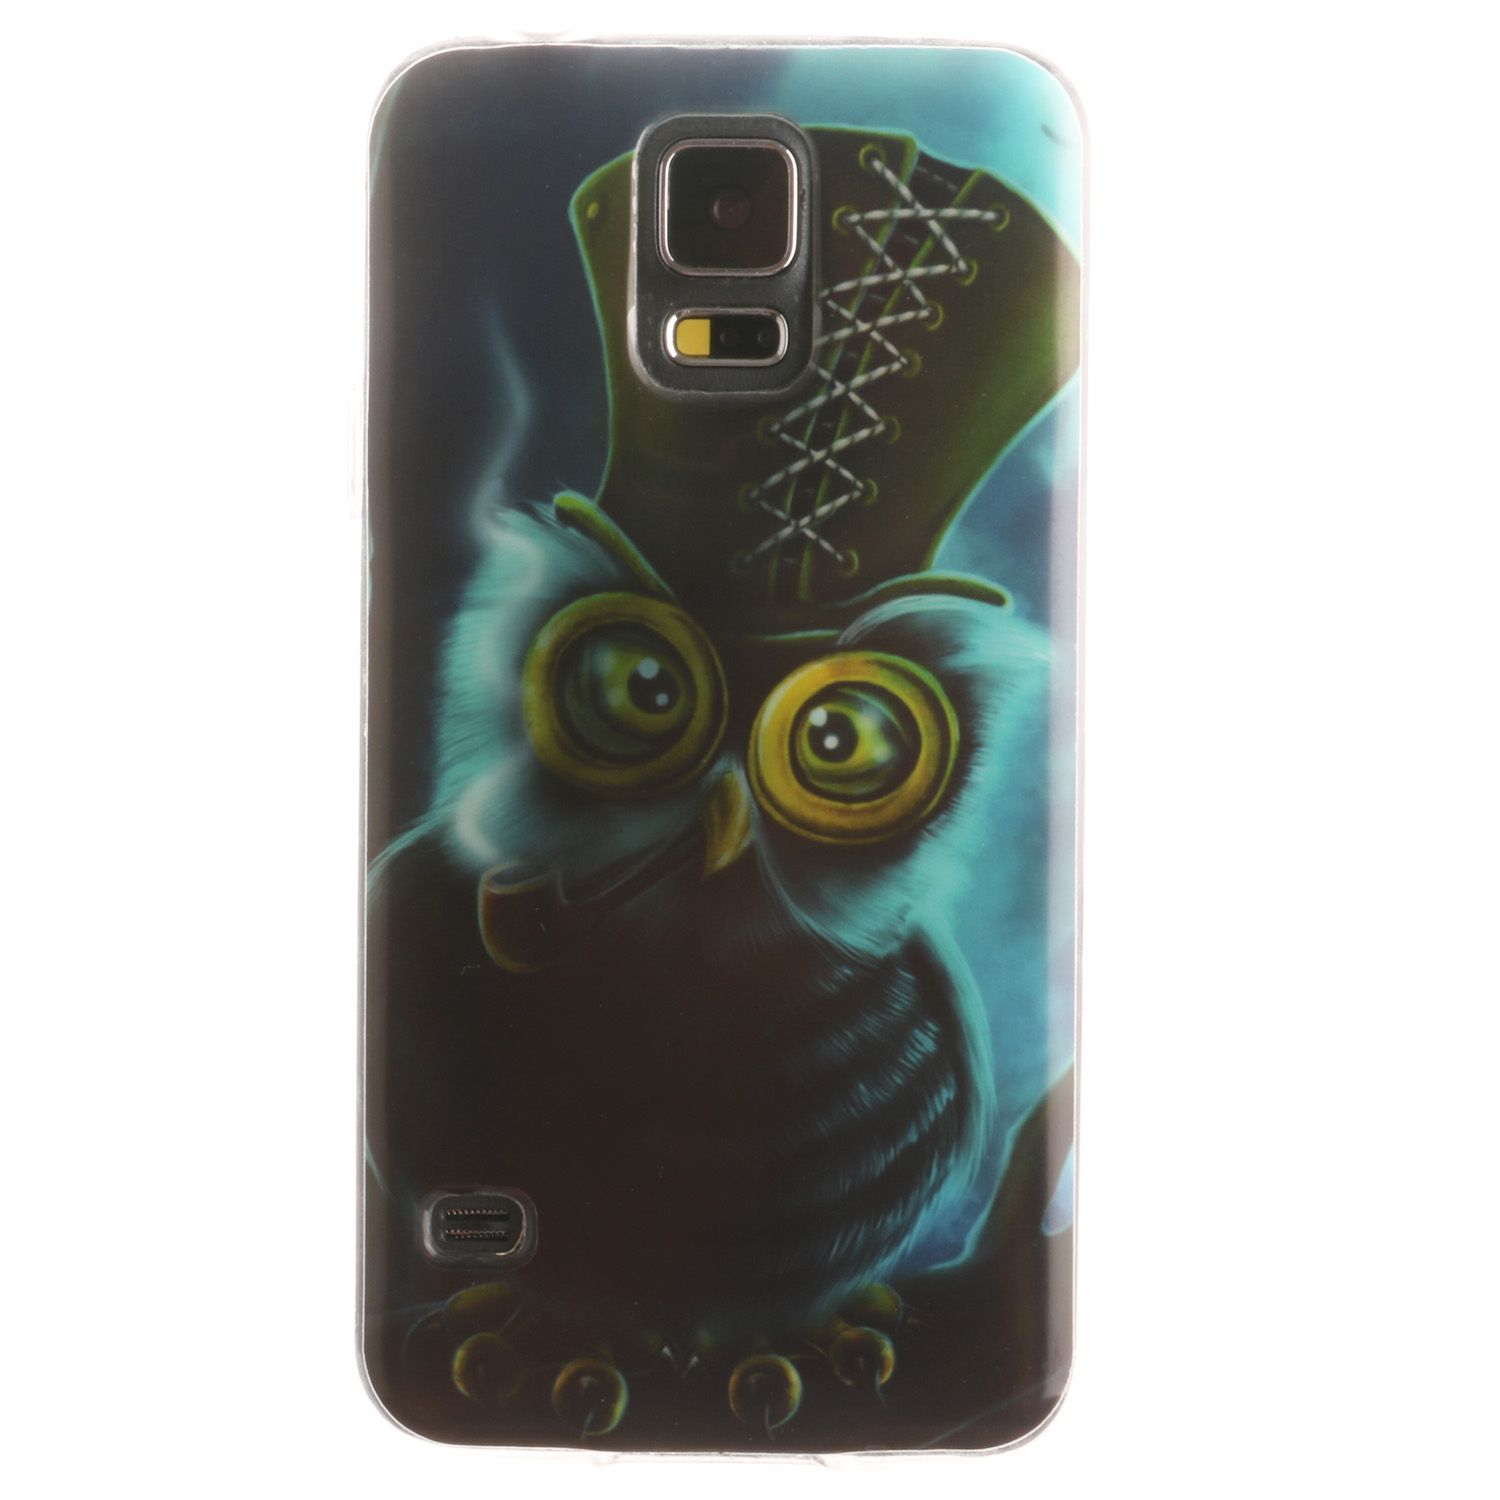 IMD Process Cover For Samsung S5 Mini Case Soft Silicone TPU Case For Samsung Galaxy S5 Mini G800 Phone ShockProof Cover